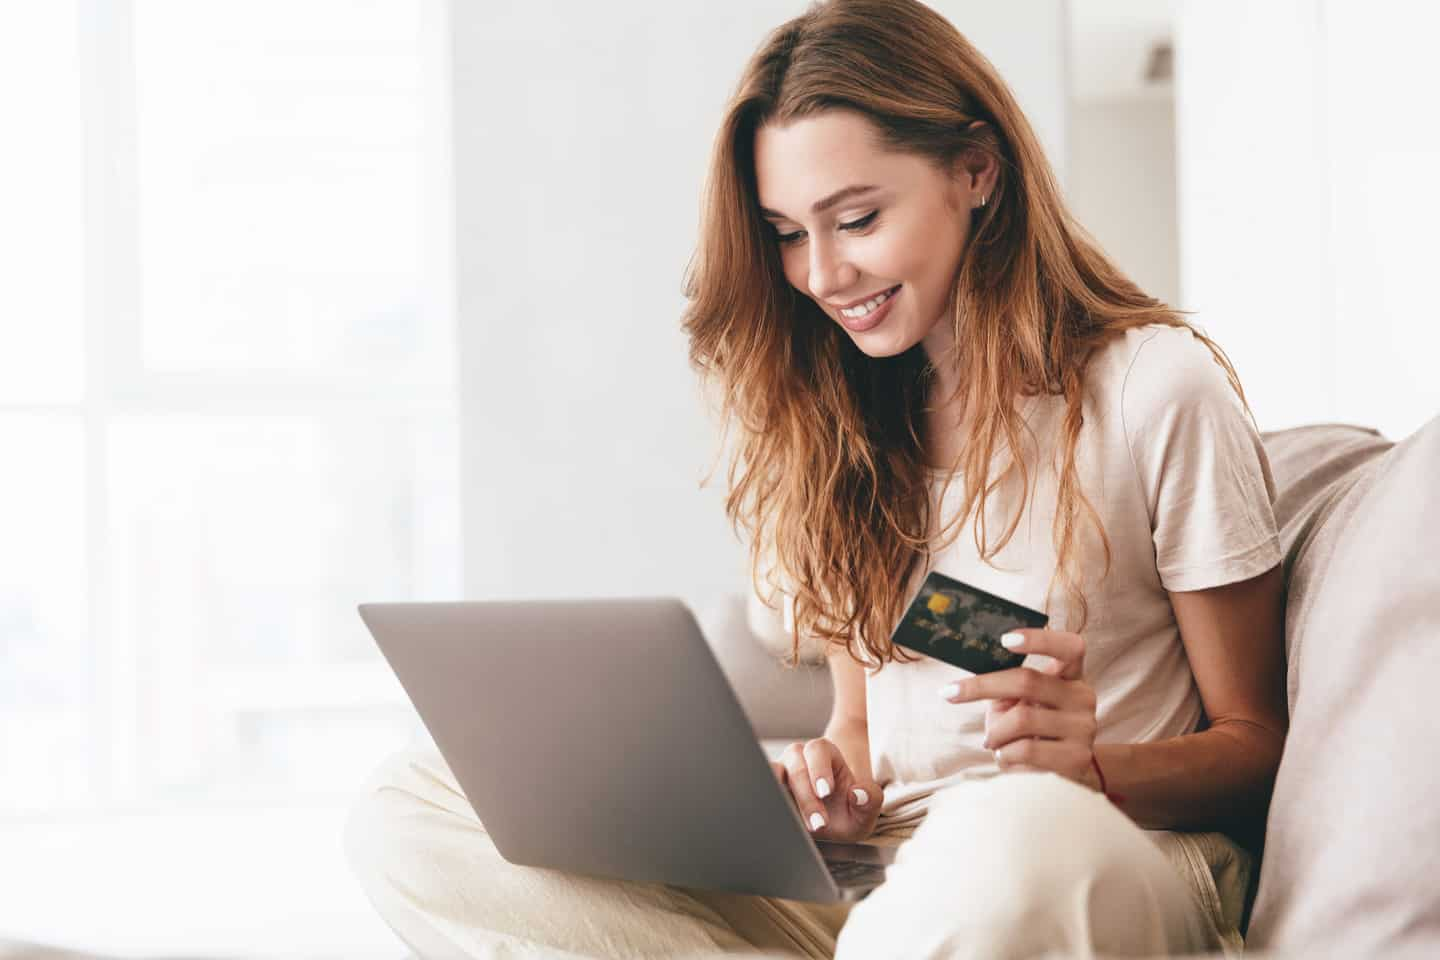 Woman Using American Express Personal Savings Account on Laptop